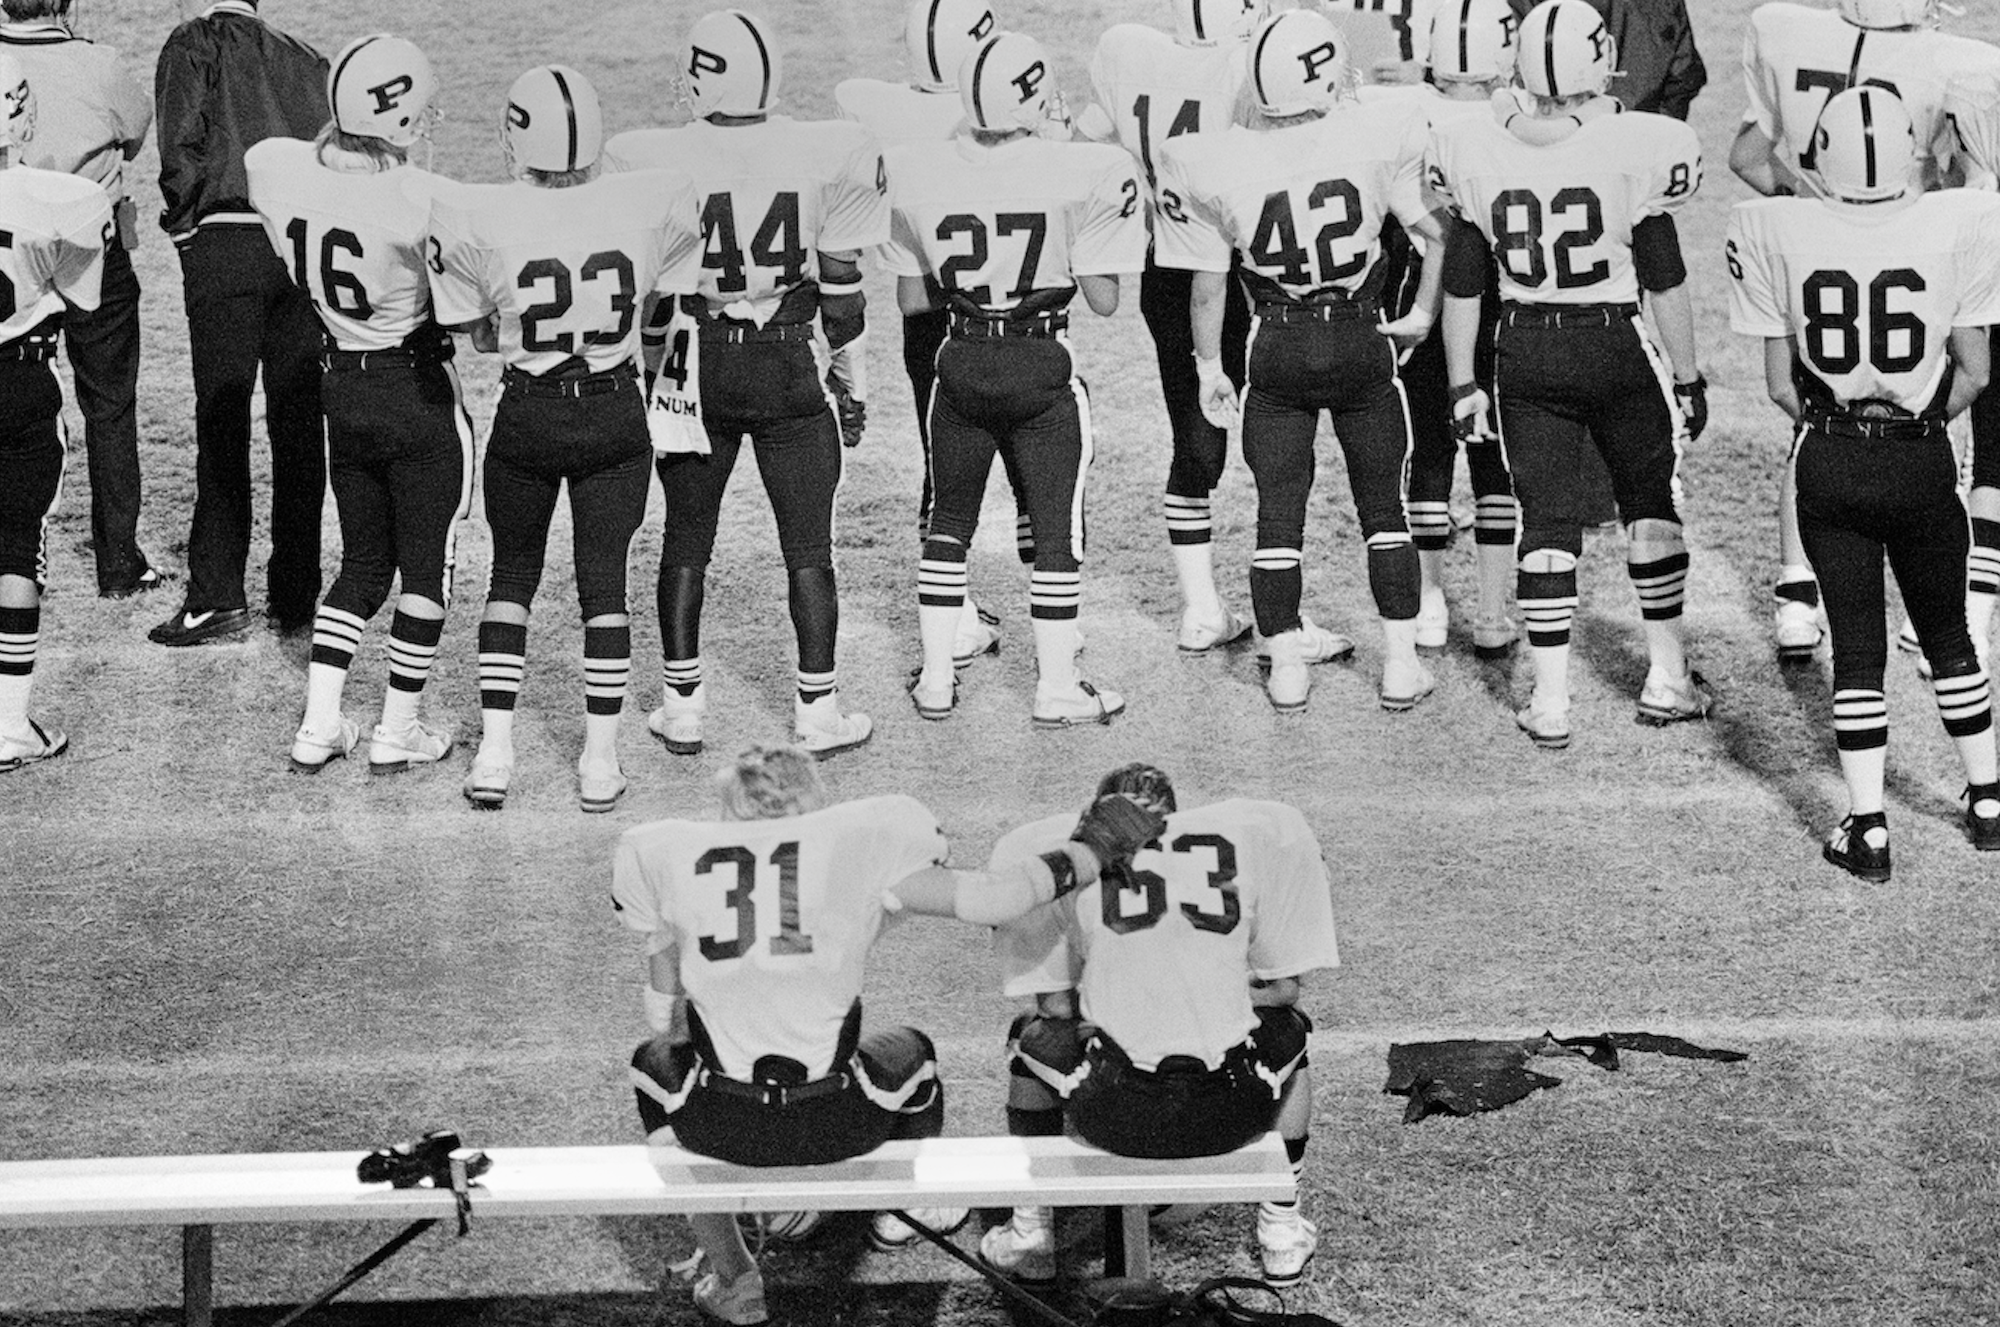 Two players sit on the bench as a number of other players stand on the field